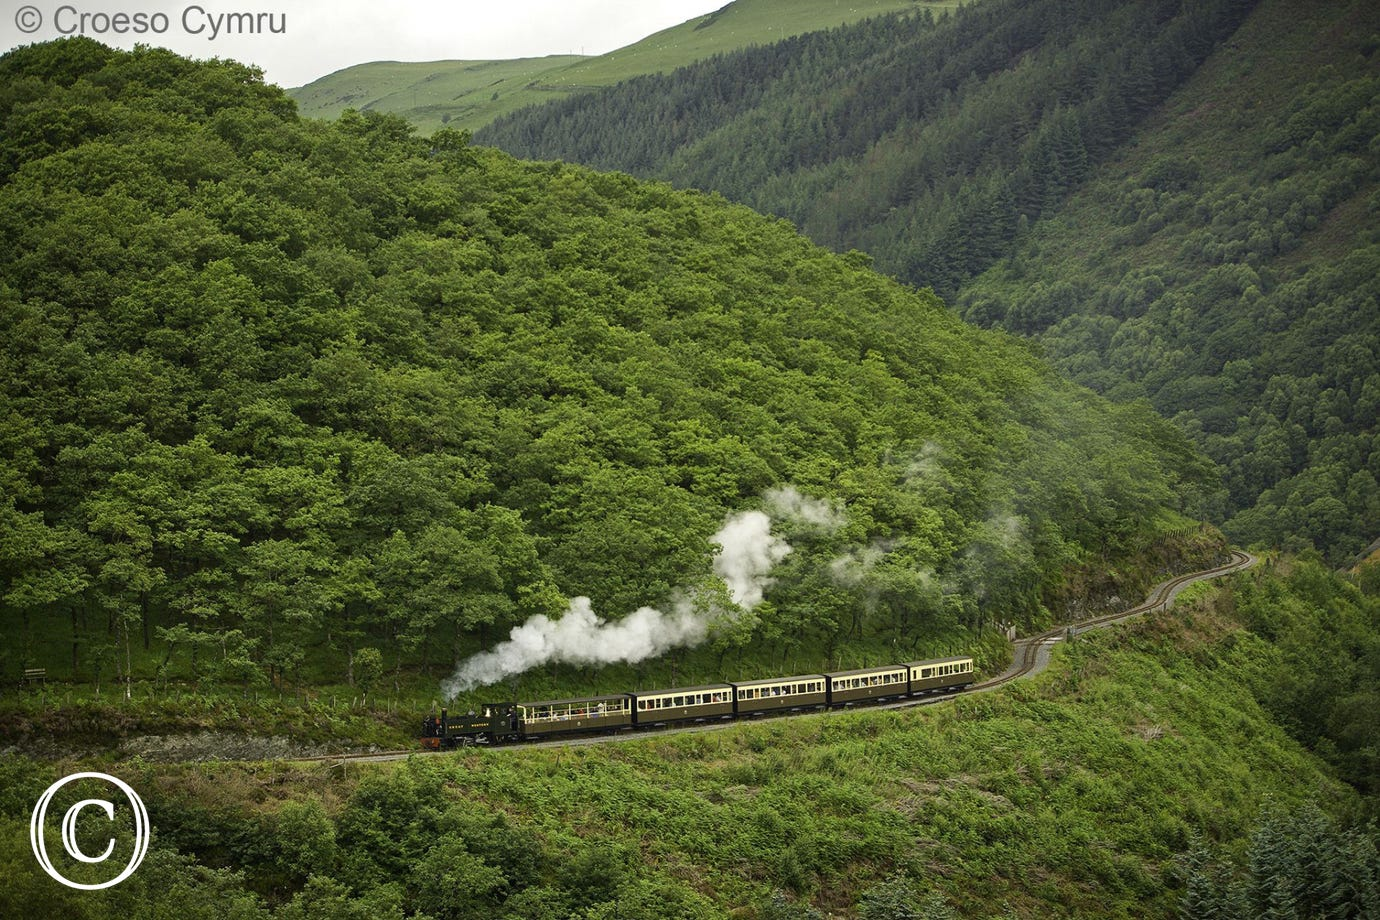 Enjoy a scenic steam train ride on the Vale of Rheidol Railway